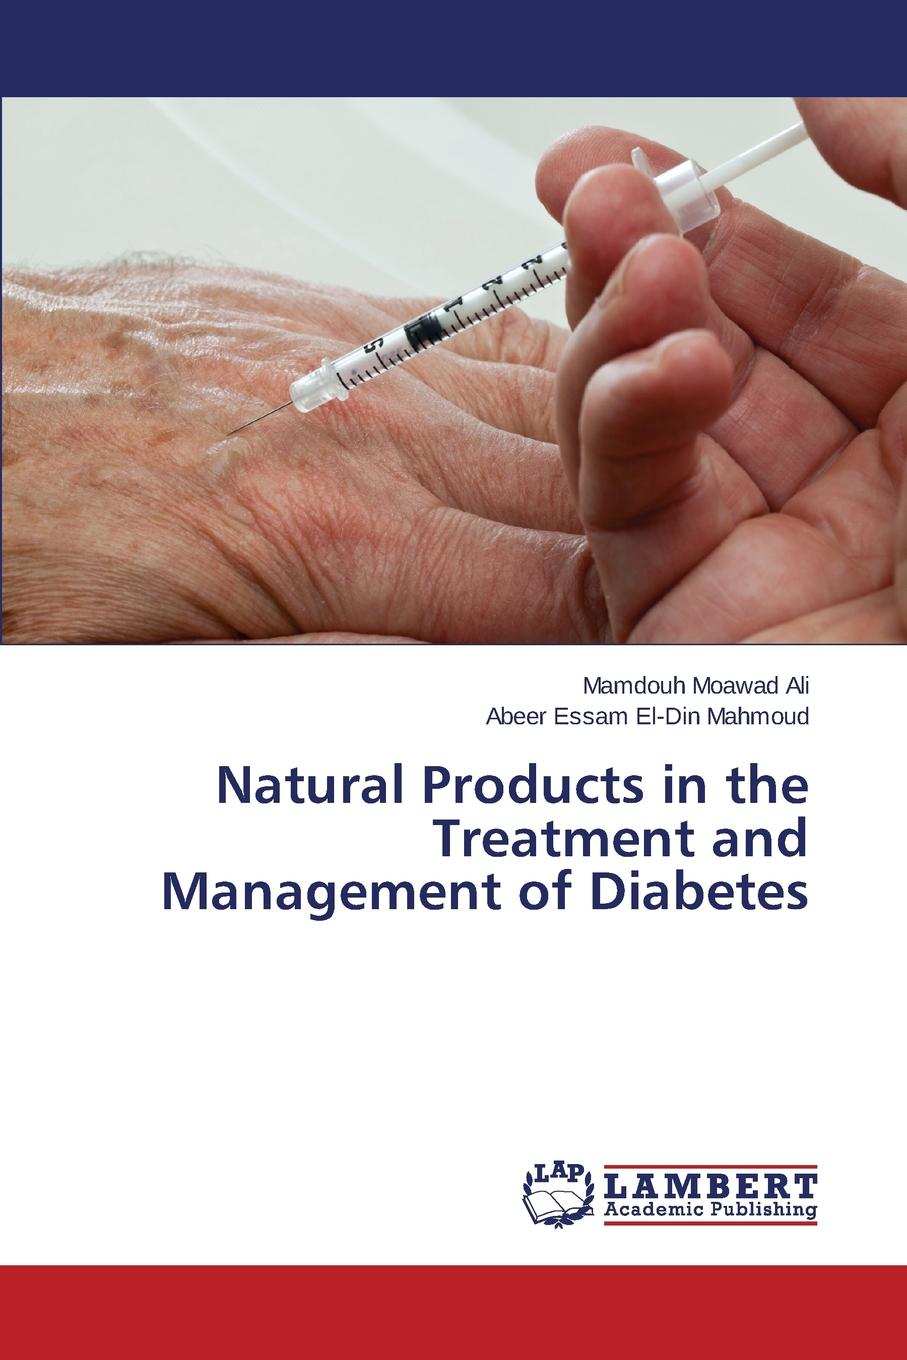 Moawad Ali Mamdouh, Essam El-Din Mahmoud Abeer Natural Products in the Treatment and Management of Diabetes недорго, оригинальная цена